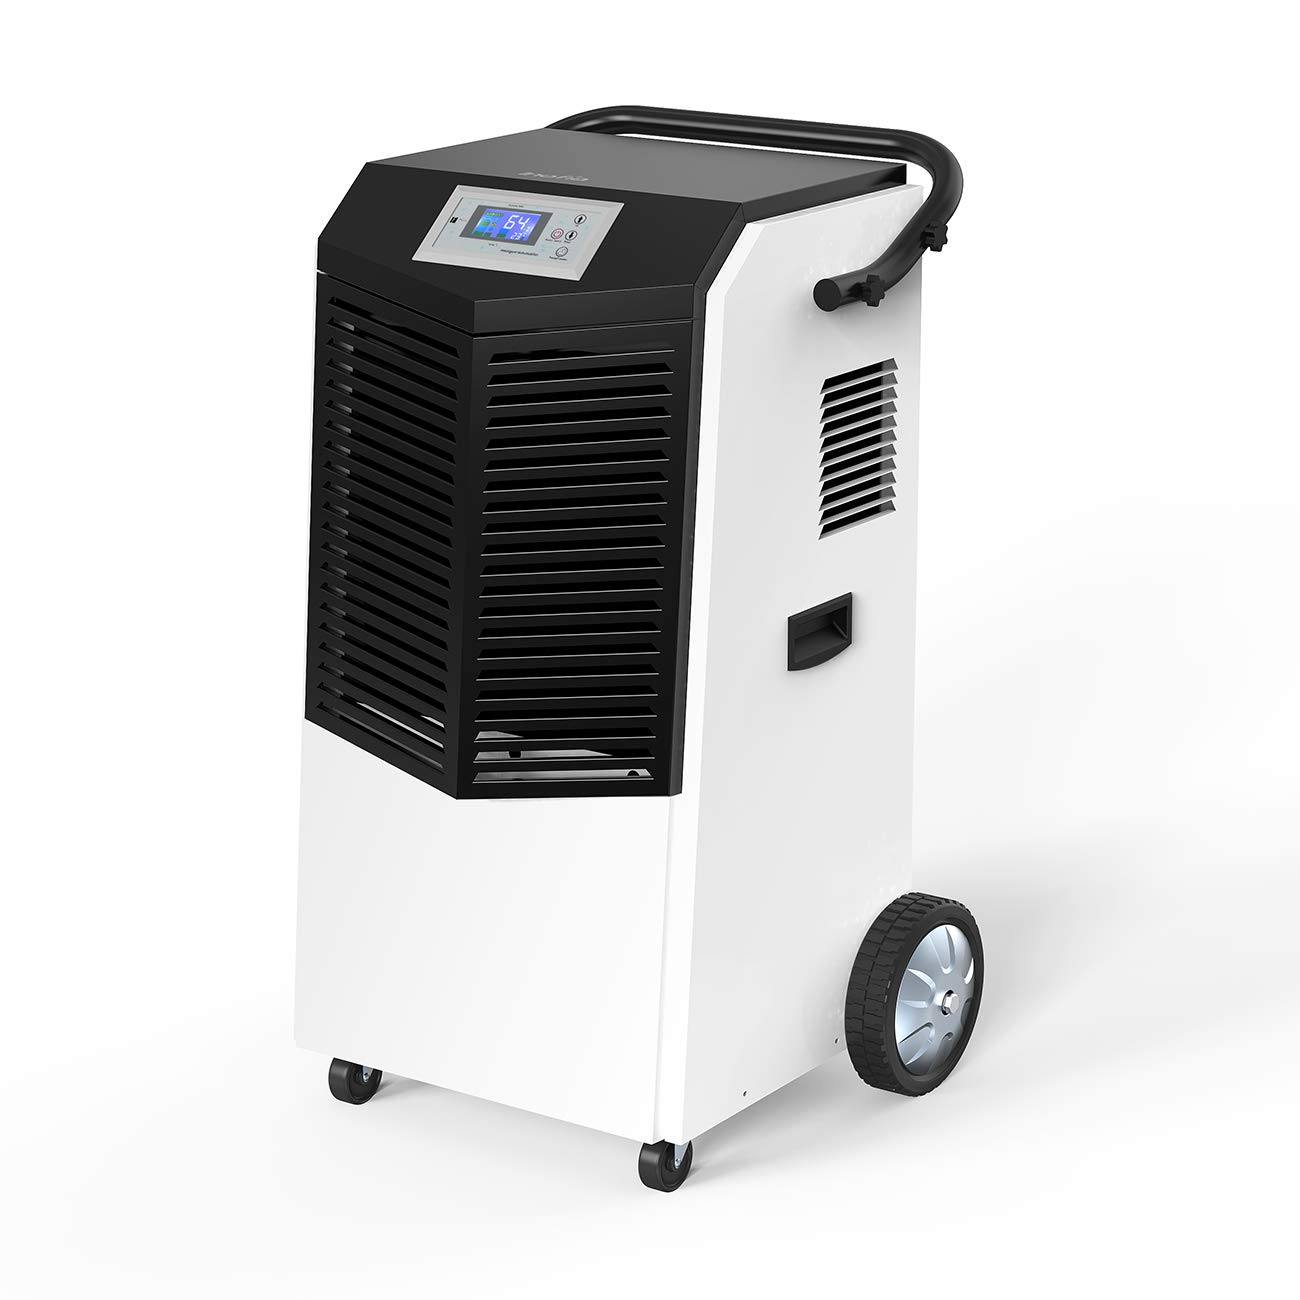 Inofia Dehumidifier, 232 Pints 29 Gallons Large Capacity Compressor Basement Industrial Commercial Dehumidifiers, Auto Defrost, Perfect for Room Facilities, Warehouse, Large Building